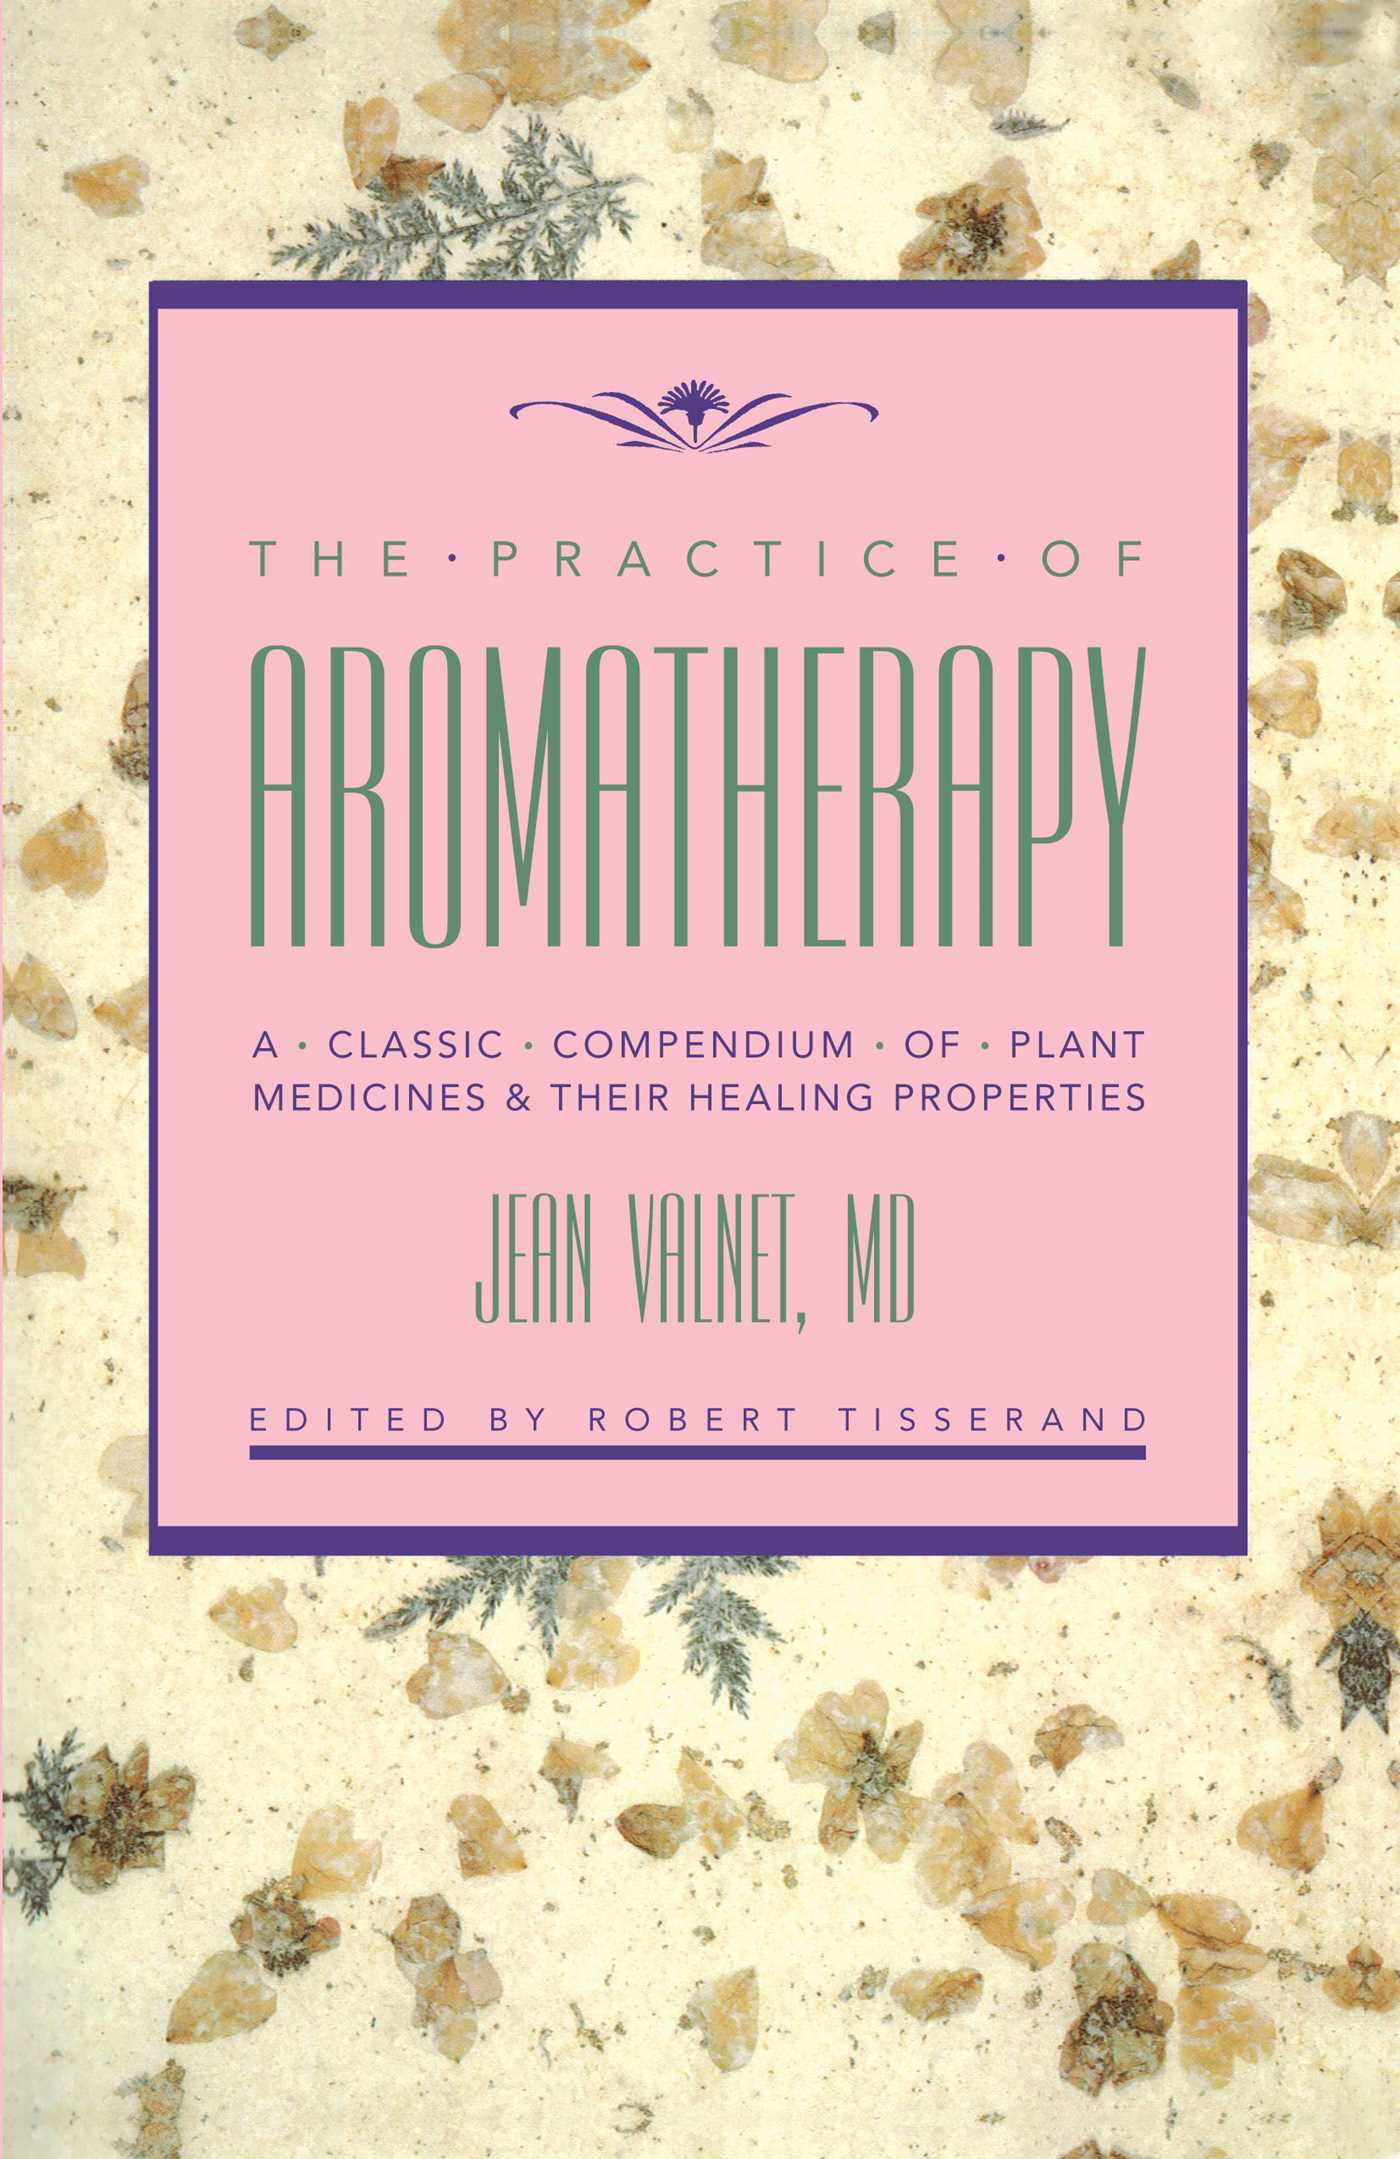 The practice of aromatherapy 9780892813988 hr